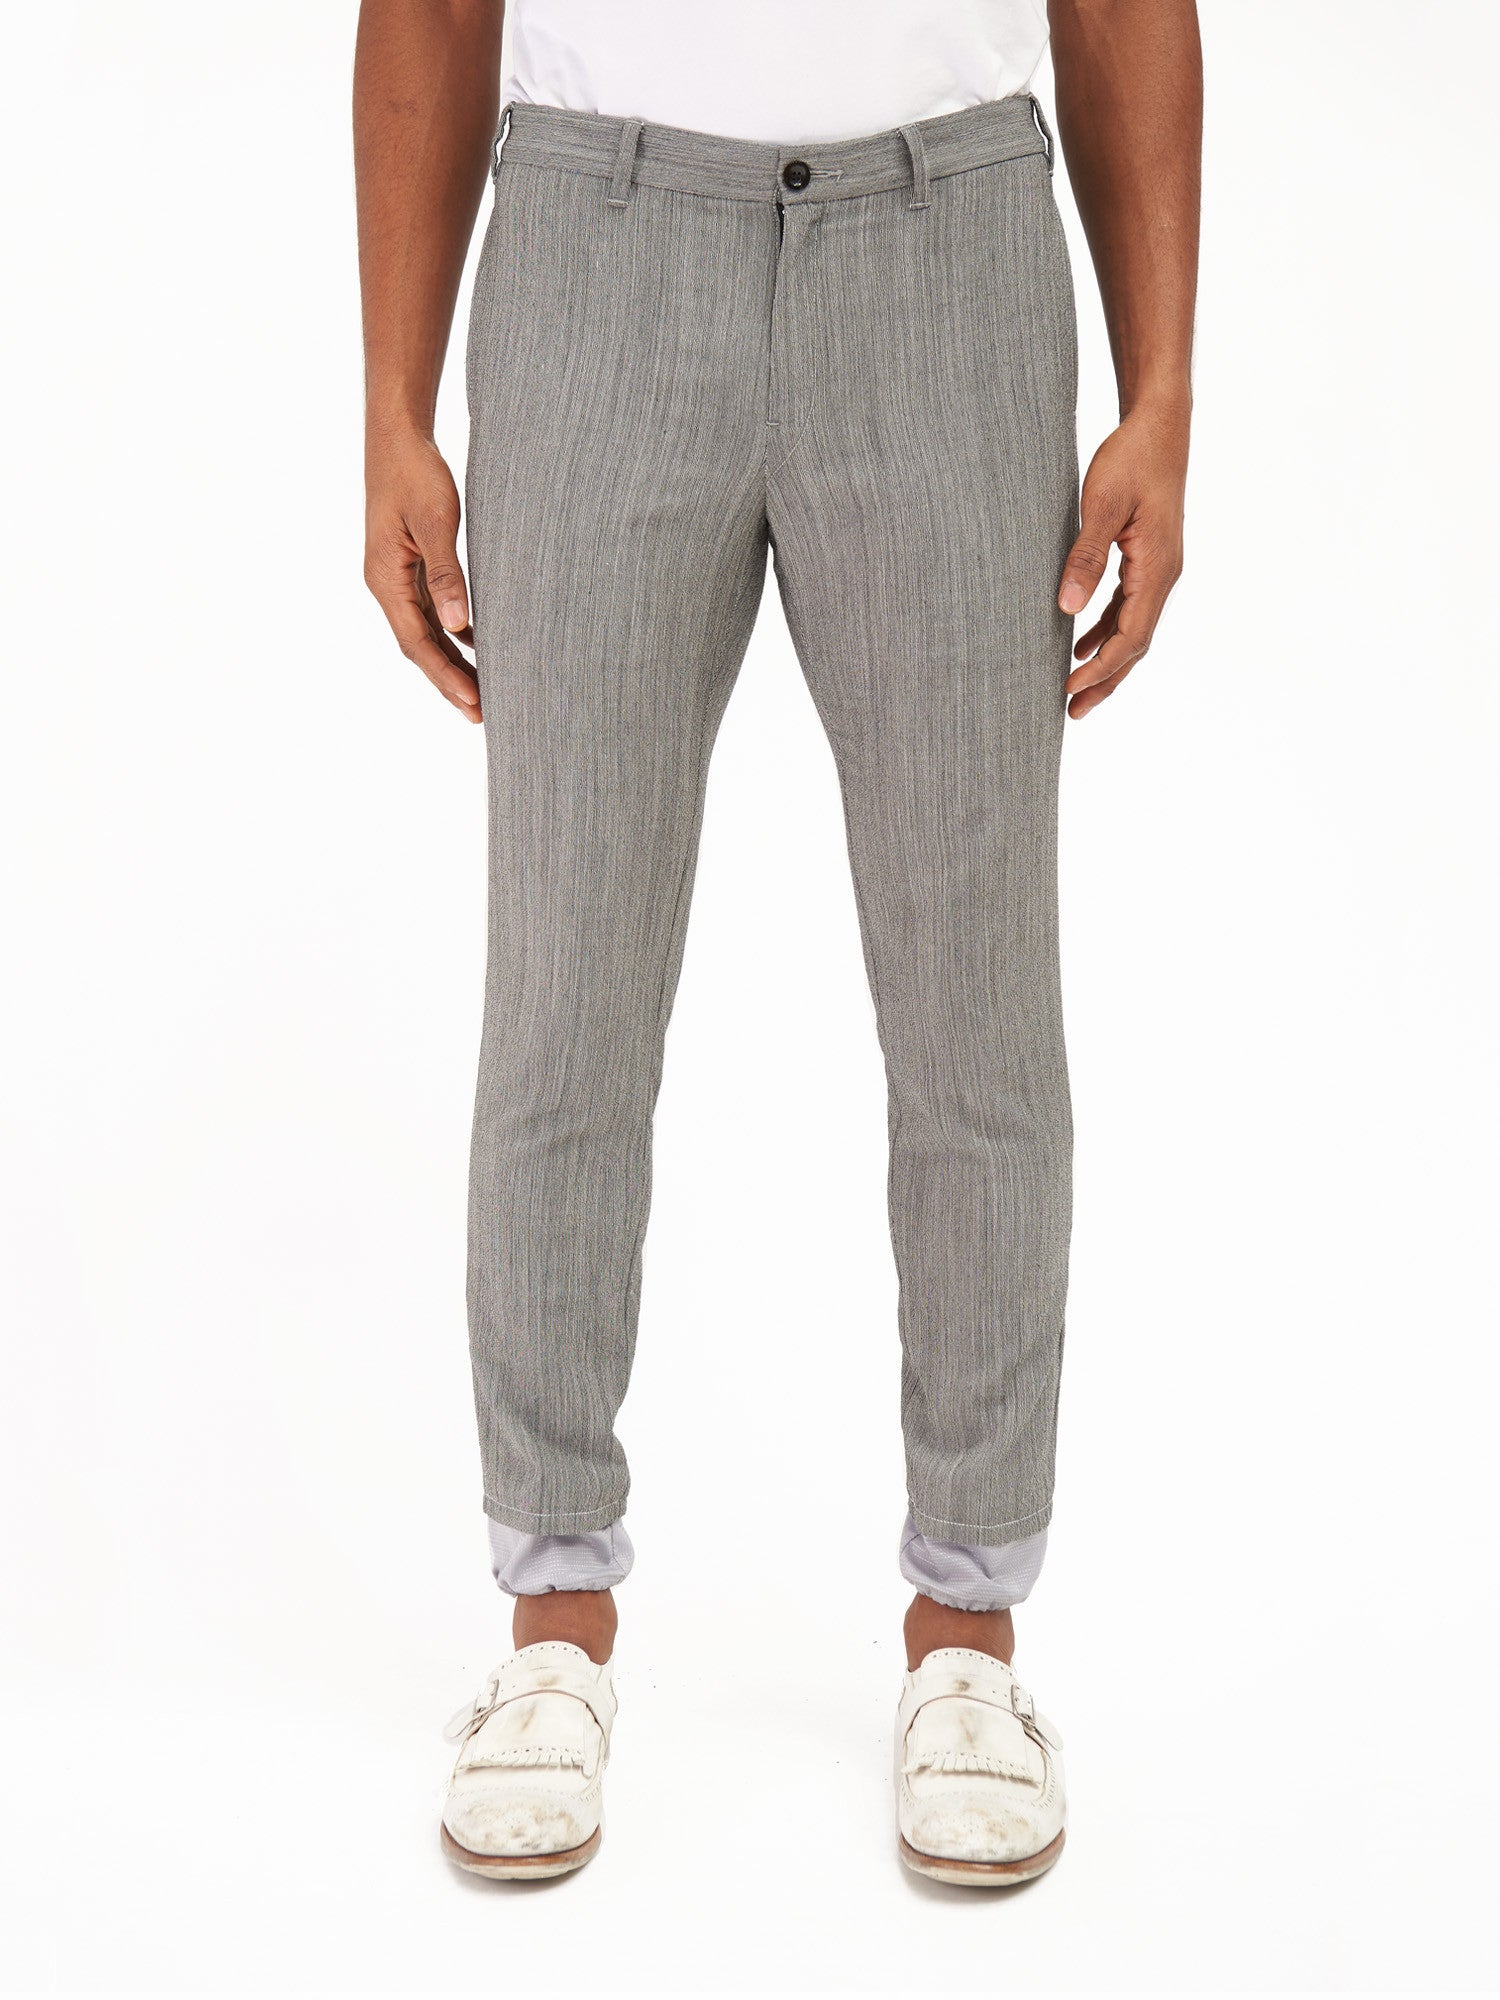 Traverse Tailored Trouser